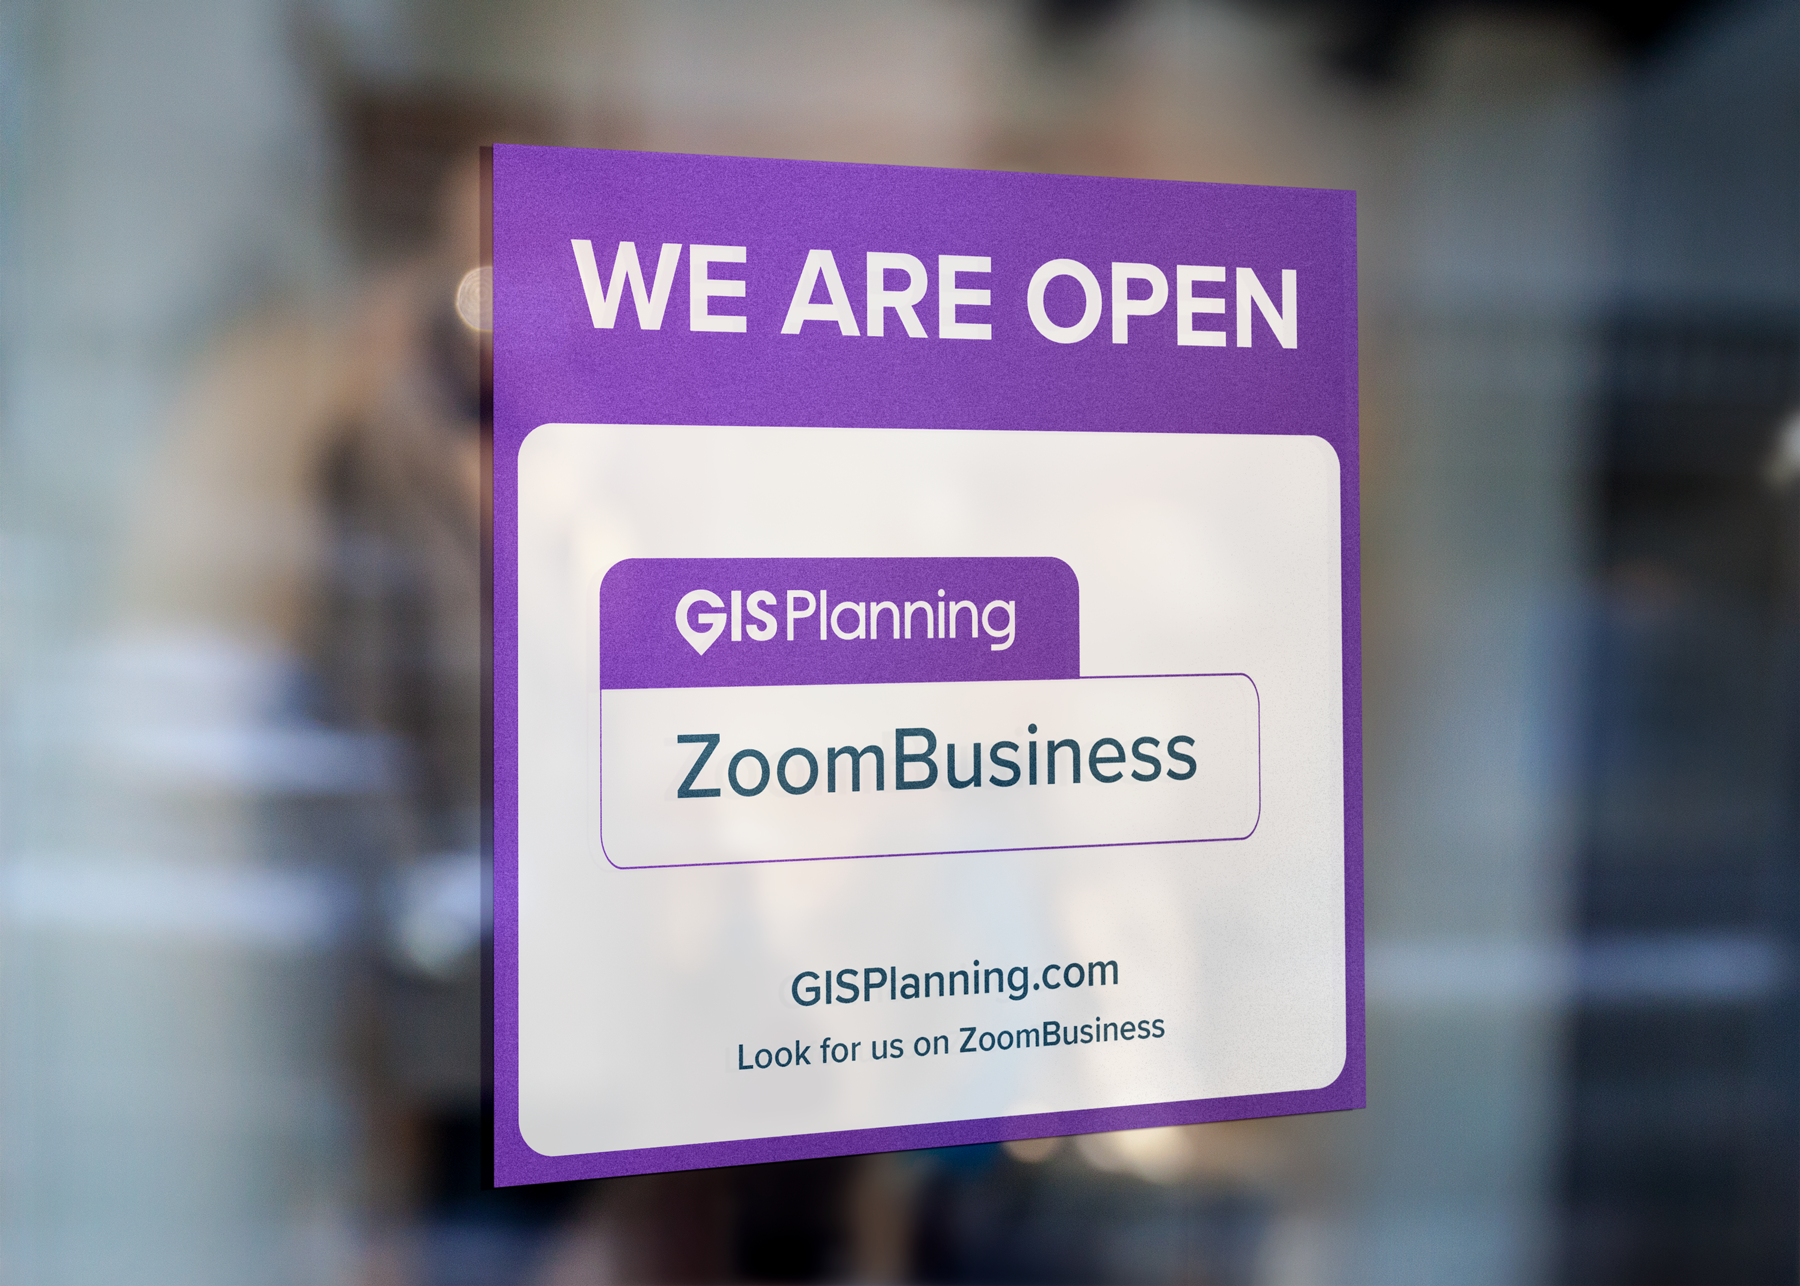 GIS Planning ZoomBusiness Window Display